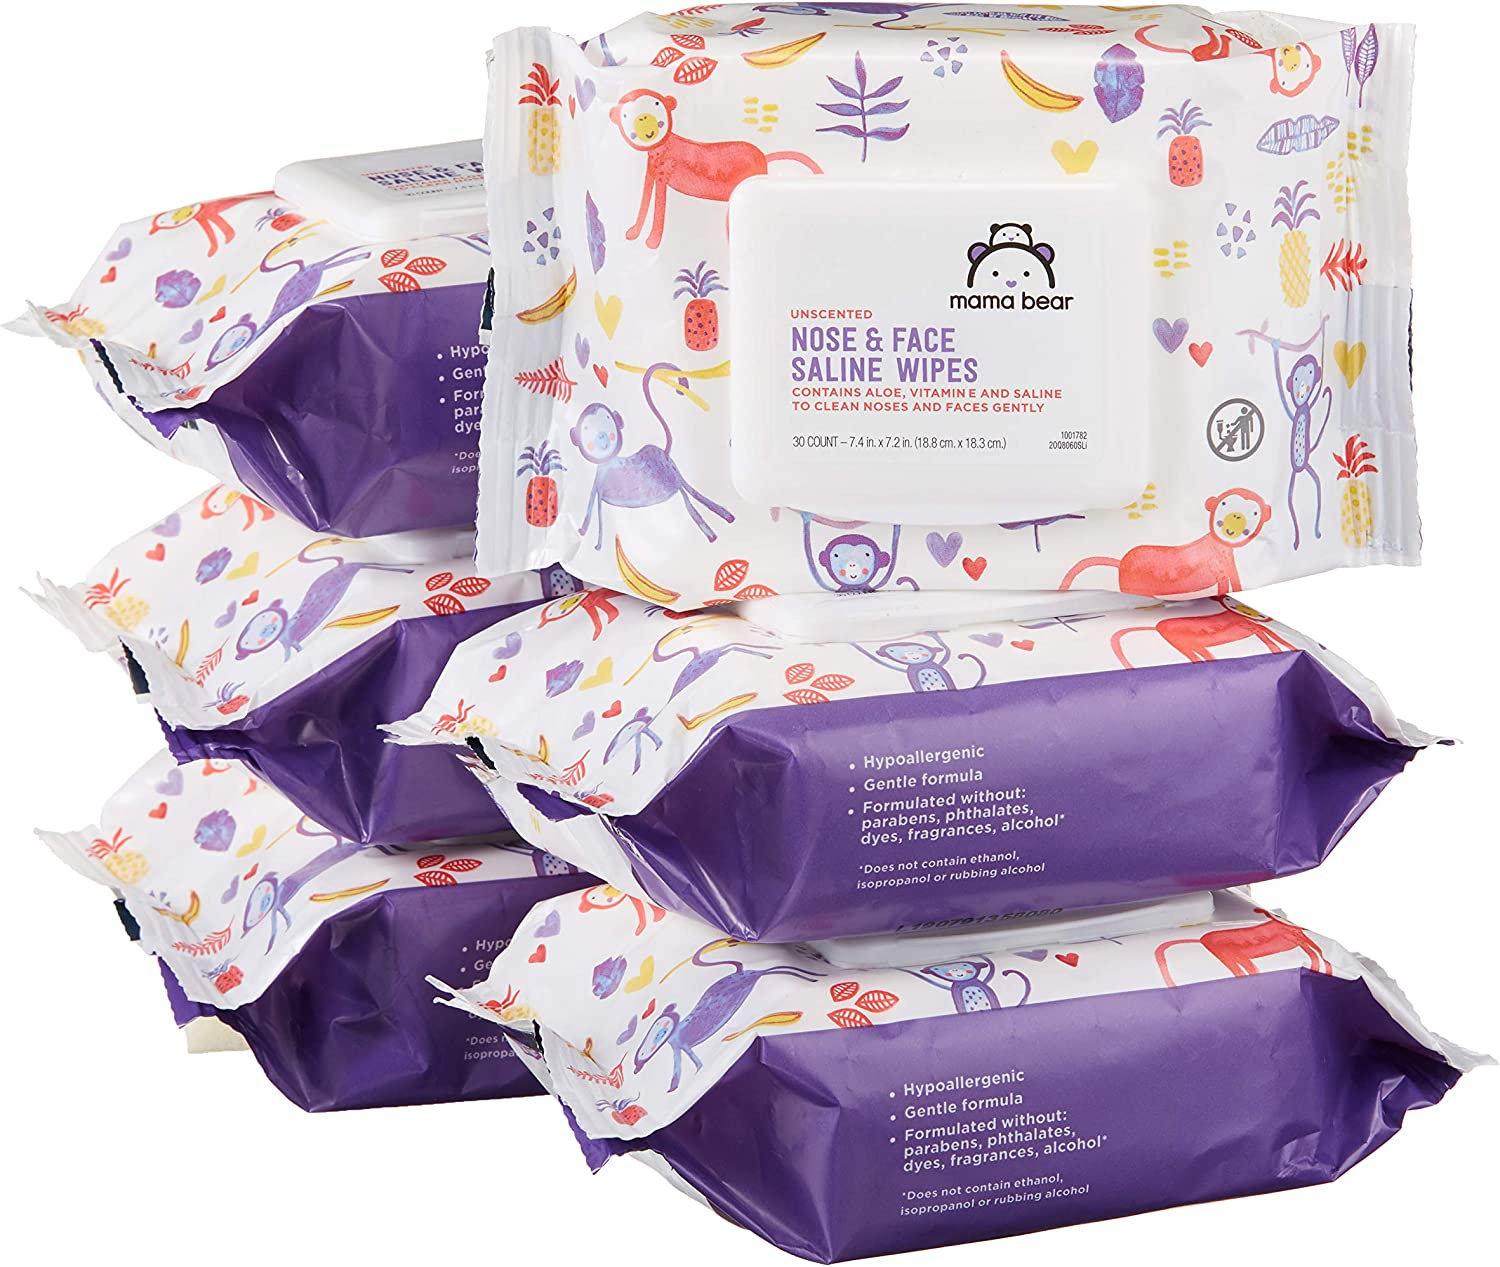 Amazon Brand - Mama Bear Saline Nose and Face Baby Wipes, Hypoallergenic, Unscented, 180 Count (6 Packs of 30 Wipes)